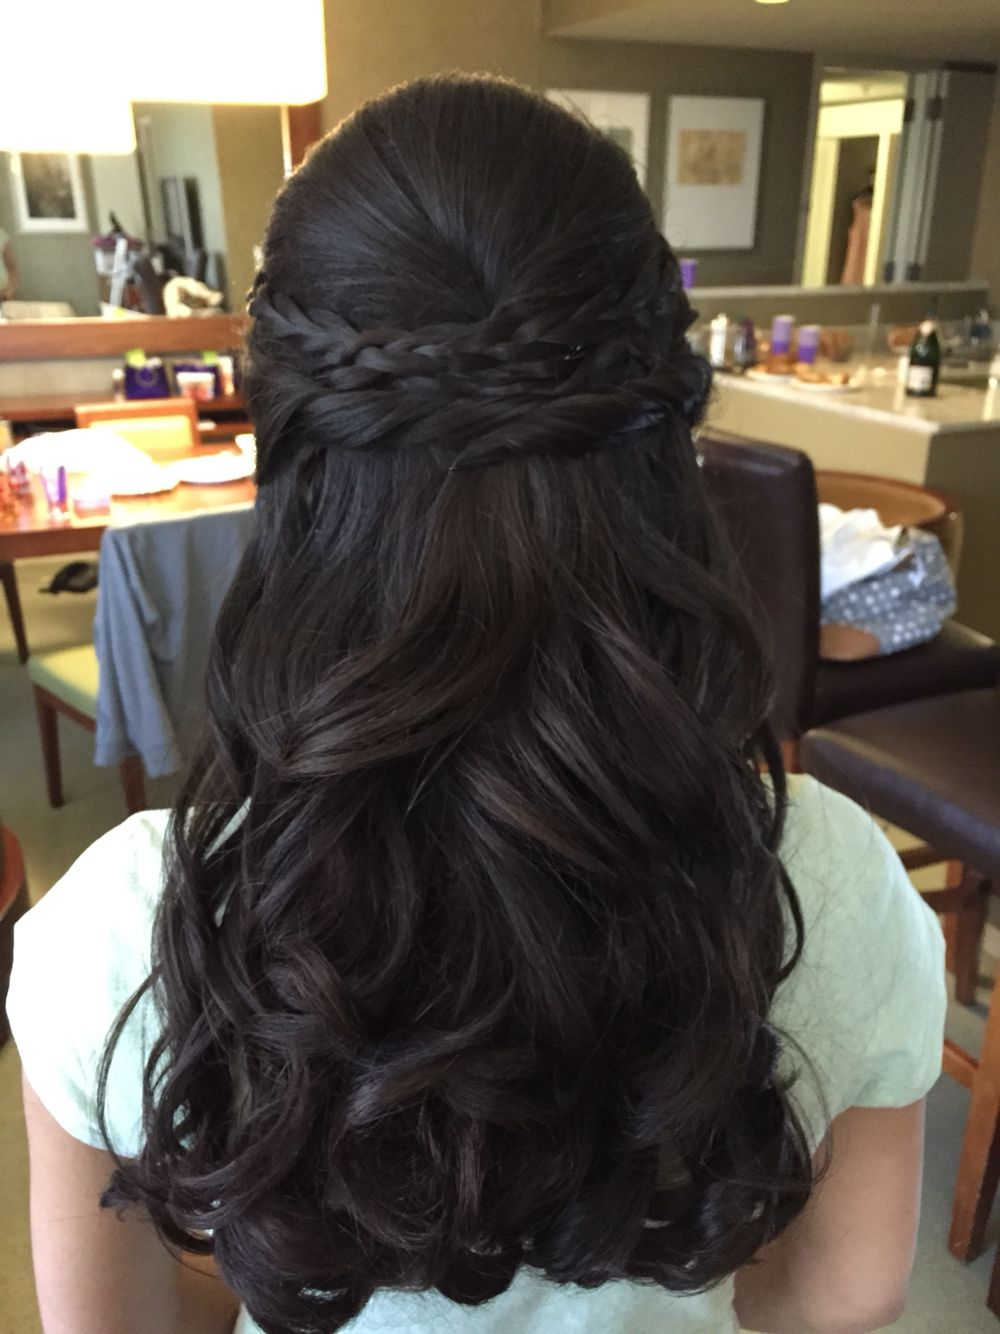 Bridalhair Bride Braid Hair Updo Wedding Wedding Hair Indianbride Bridesmaid Braid Black Bridesmaids Hairstyles Hair Styles Box Braids Hairstyles